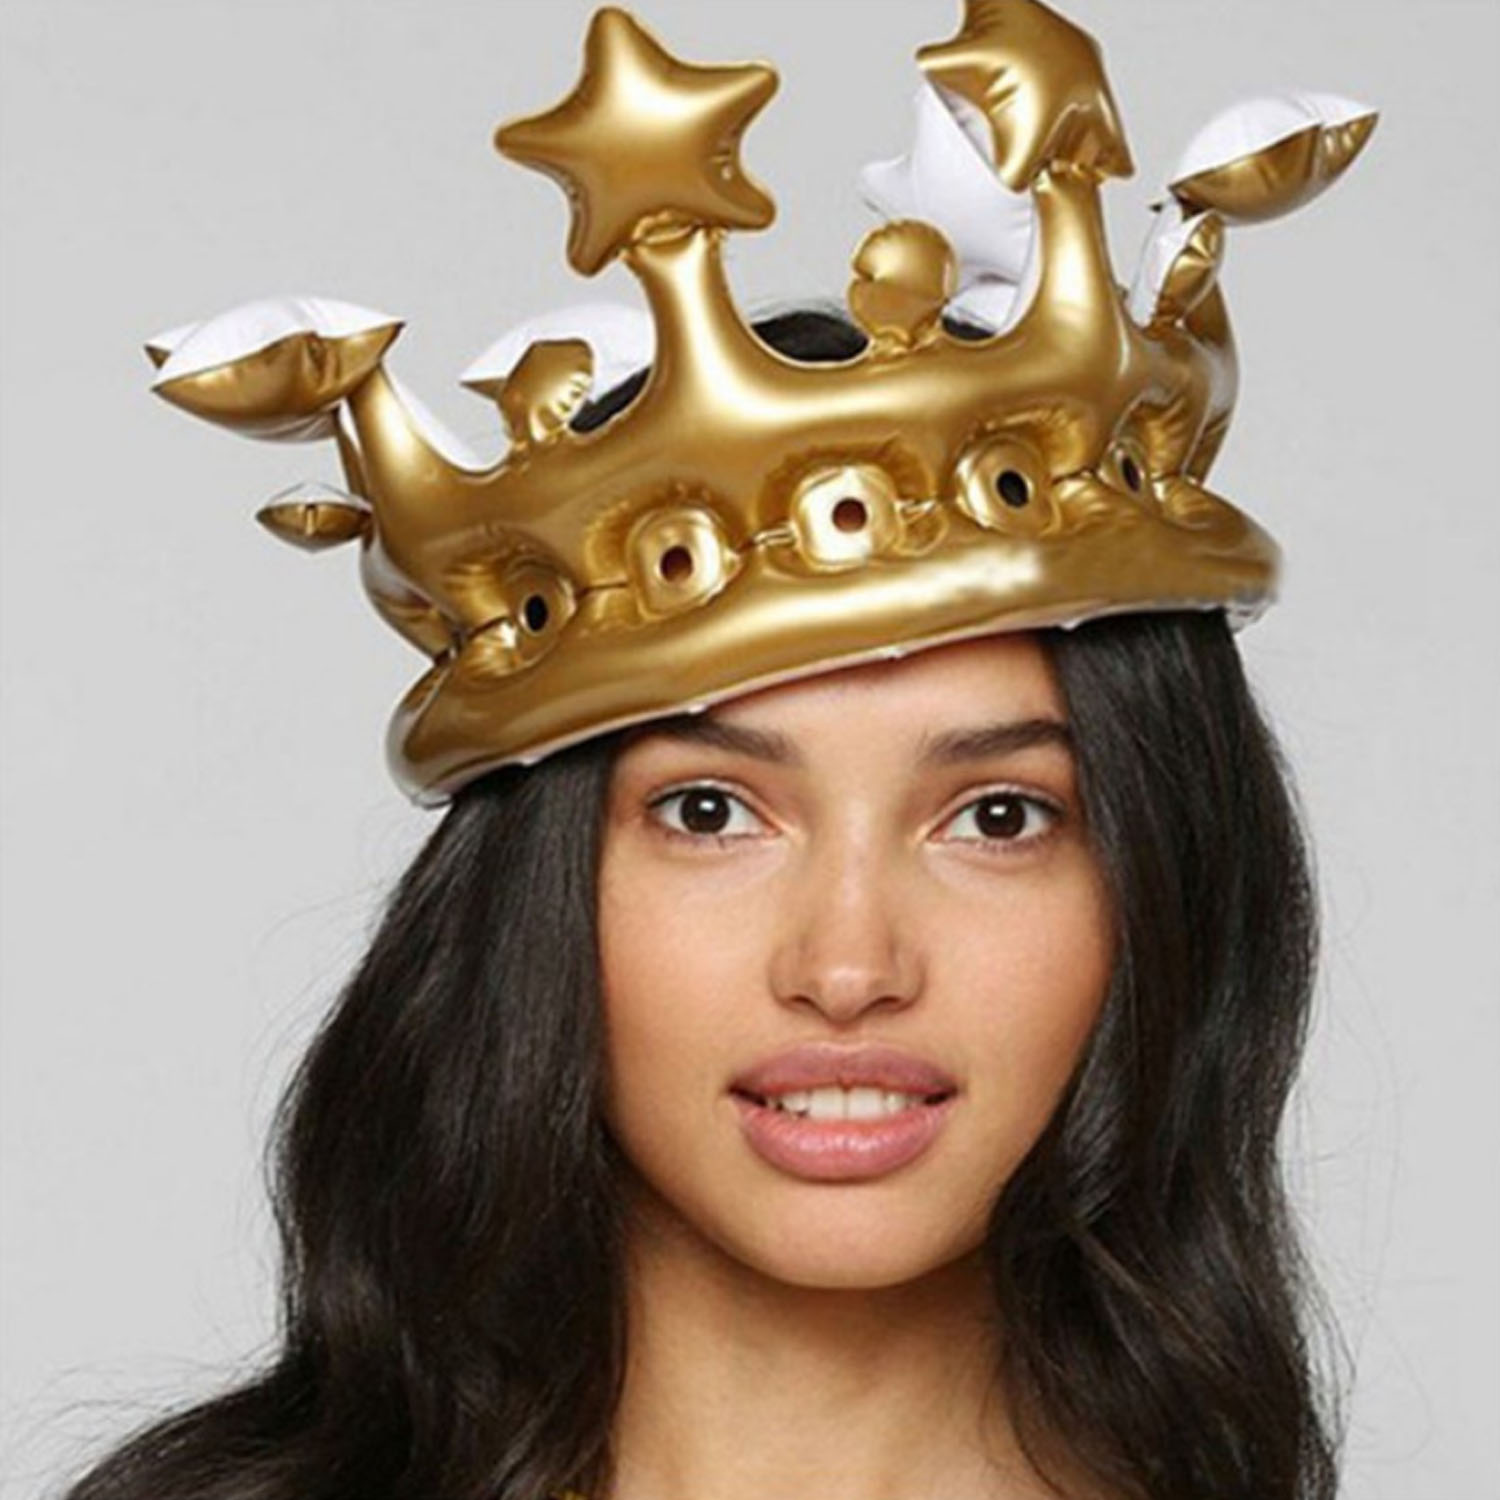 Kids Adults Funny Cute Inflatable Crown Inflated Hat Gold Crown Balloons Photo Booth Selfie Crown Props Toy for Birthday Party